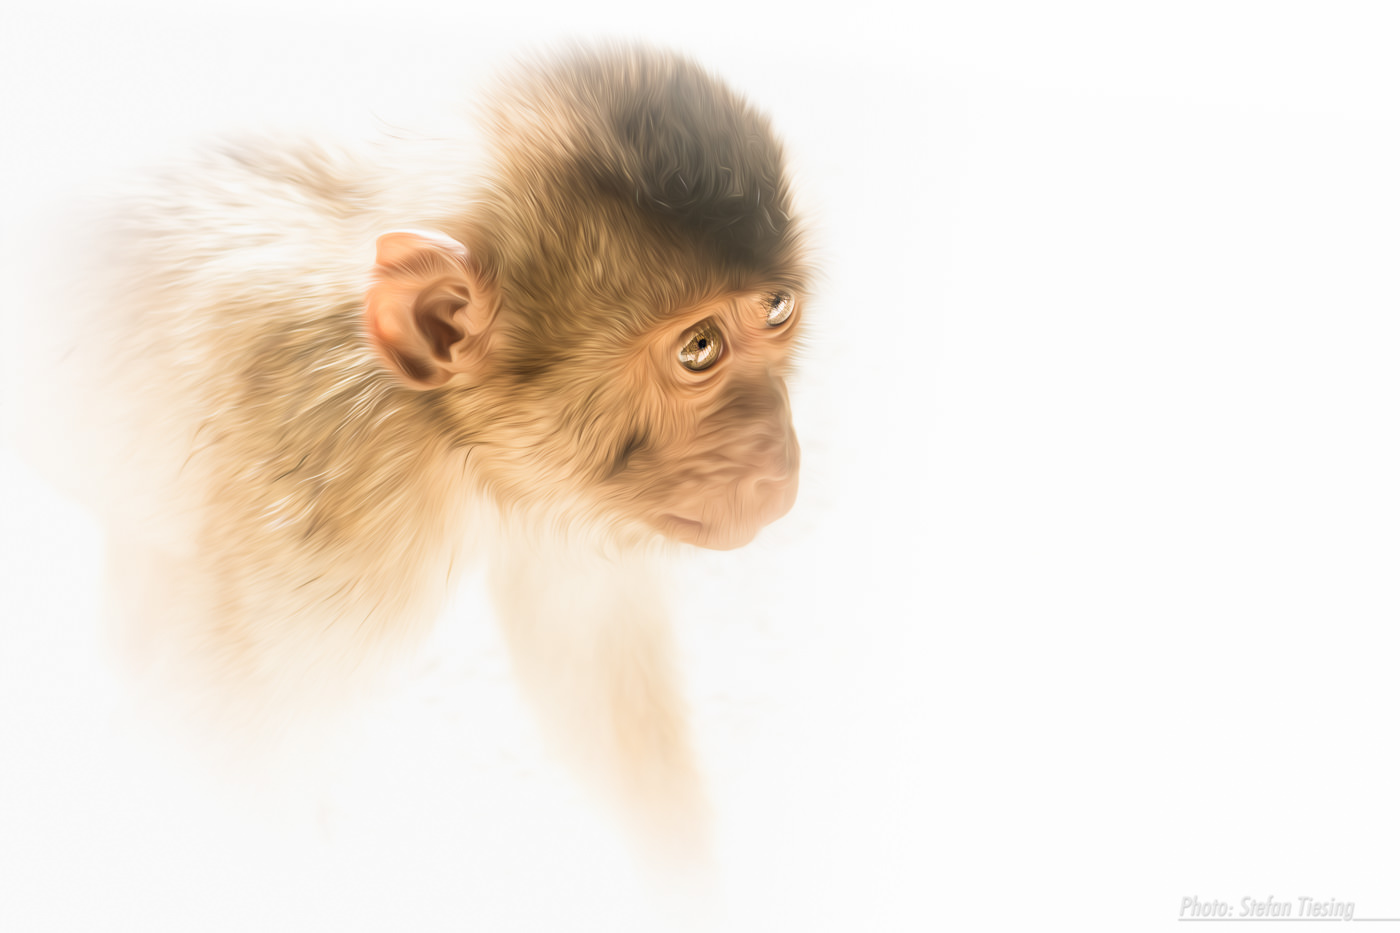 Pig-tailed macaque flooded with light